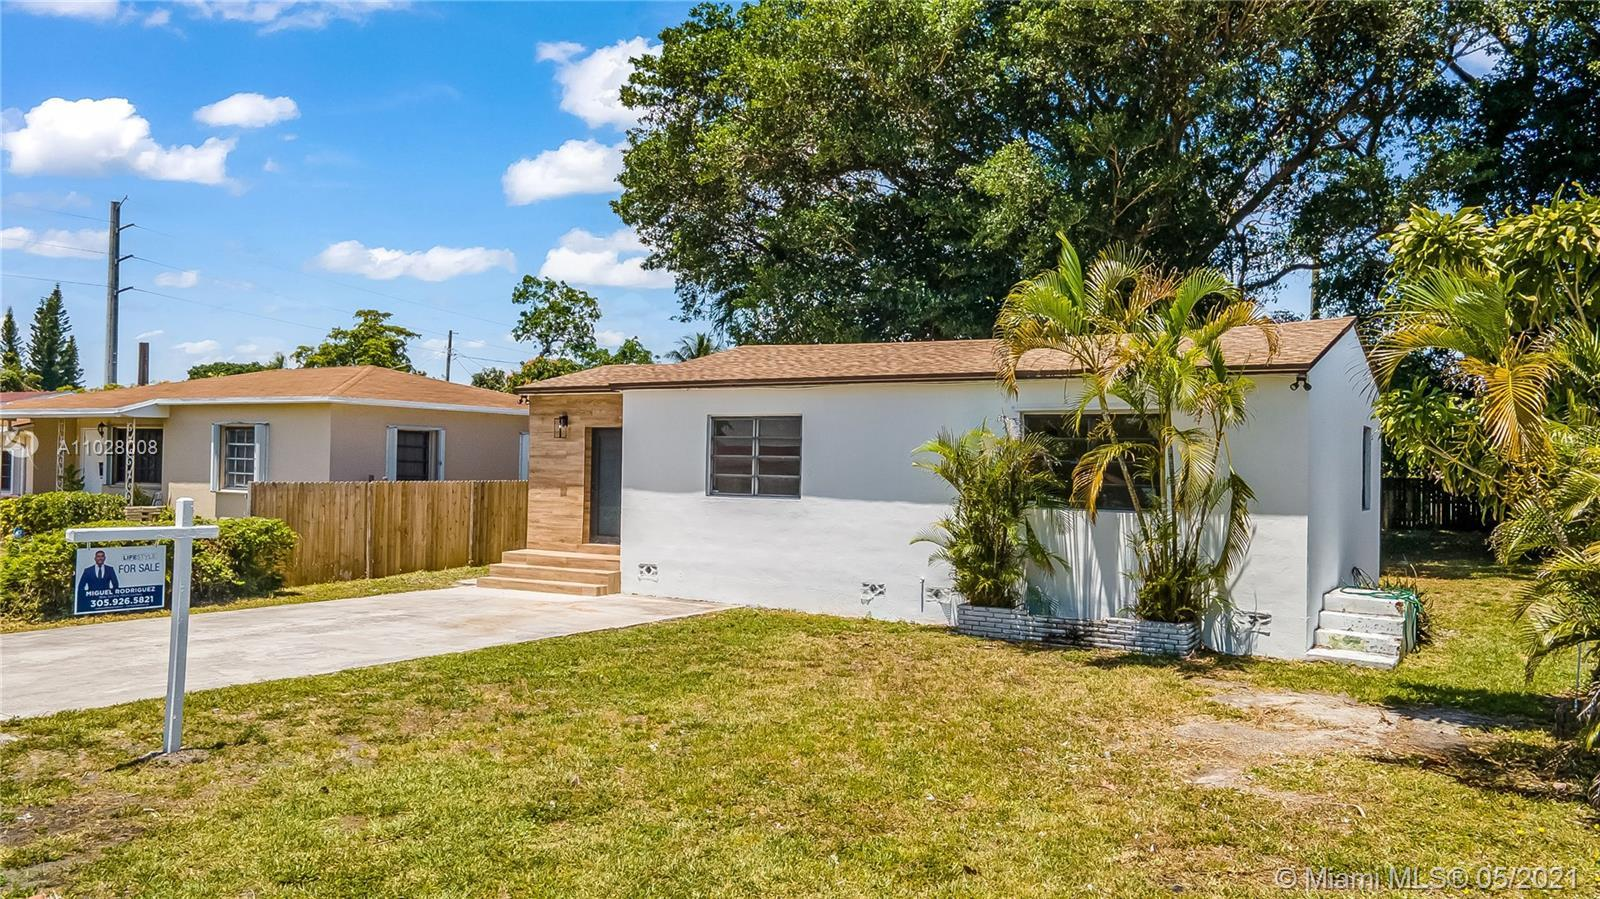 Beautifully remodeled 3 bedroom 2 bath located in Hollywood Highlands with an oversize lot. This 3 B